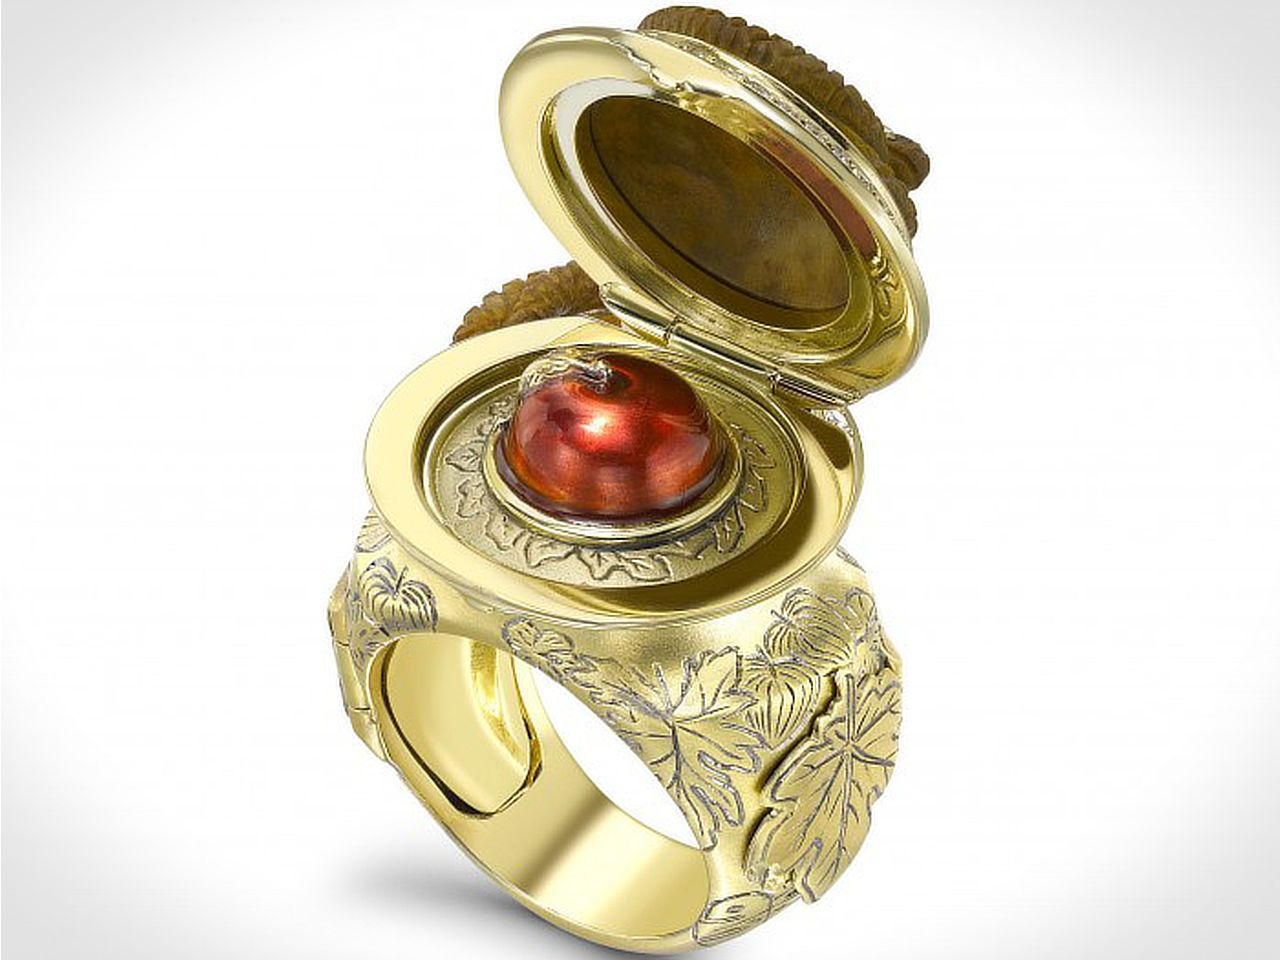 apple-of-temptation-adam-and-eve-ring-002